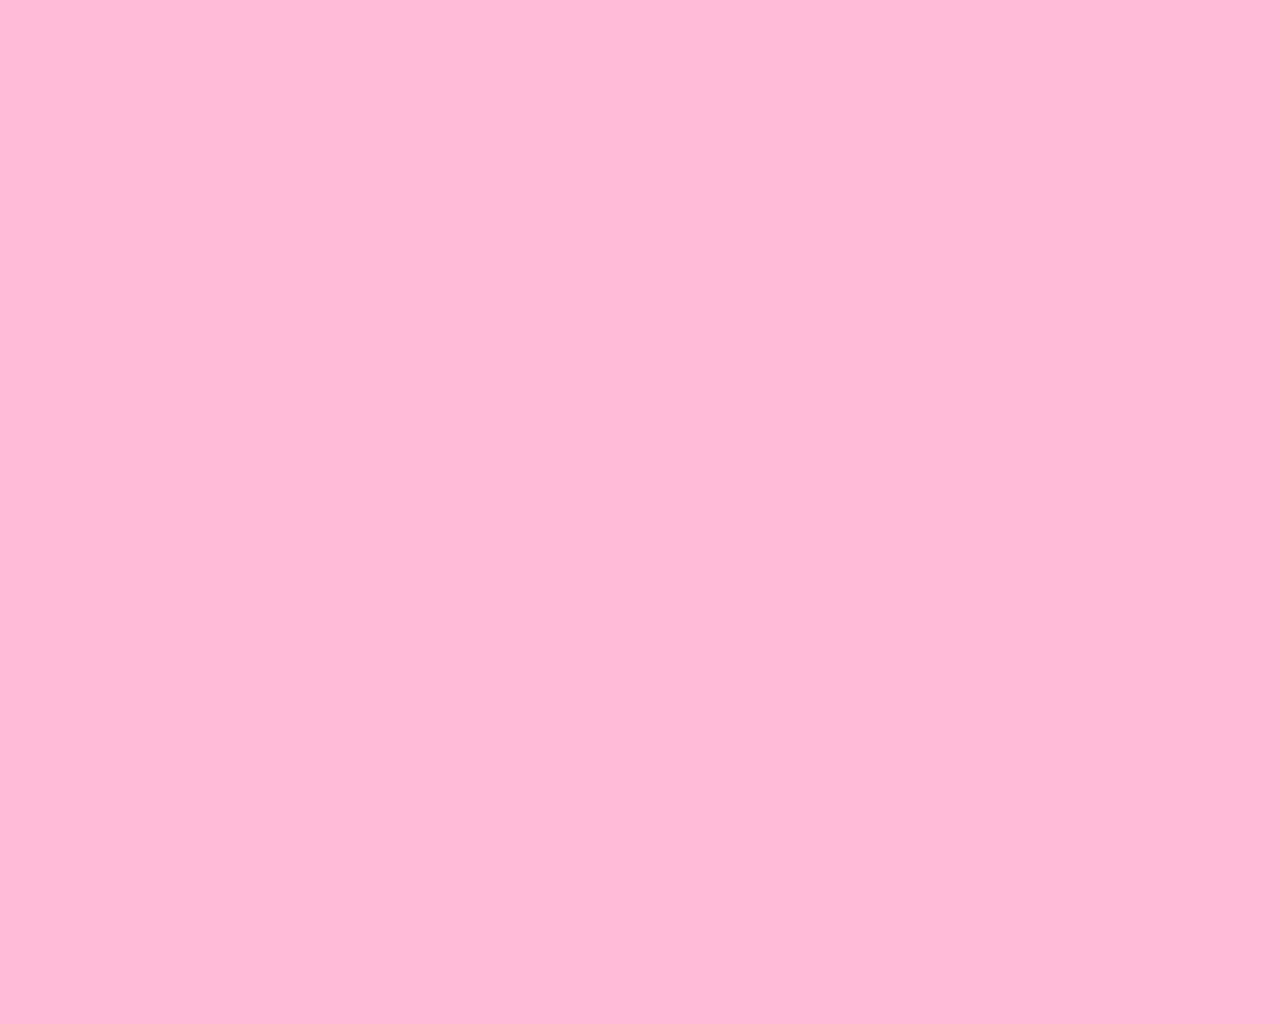 1280x1024 Cotton Candy Solid Color Background